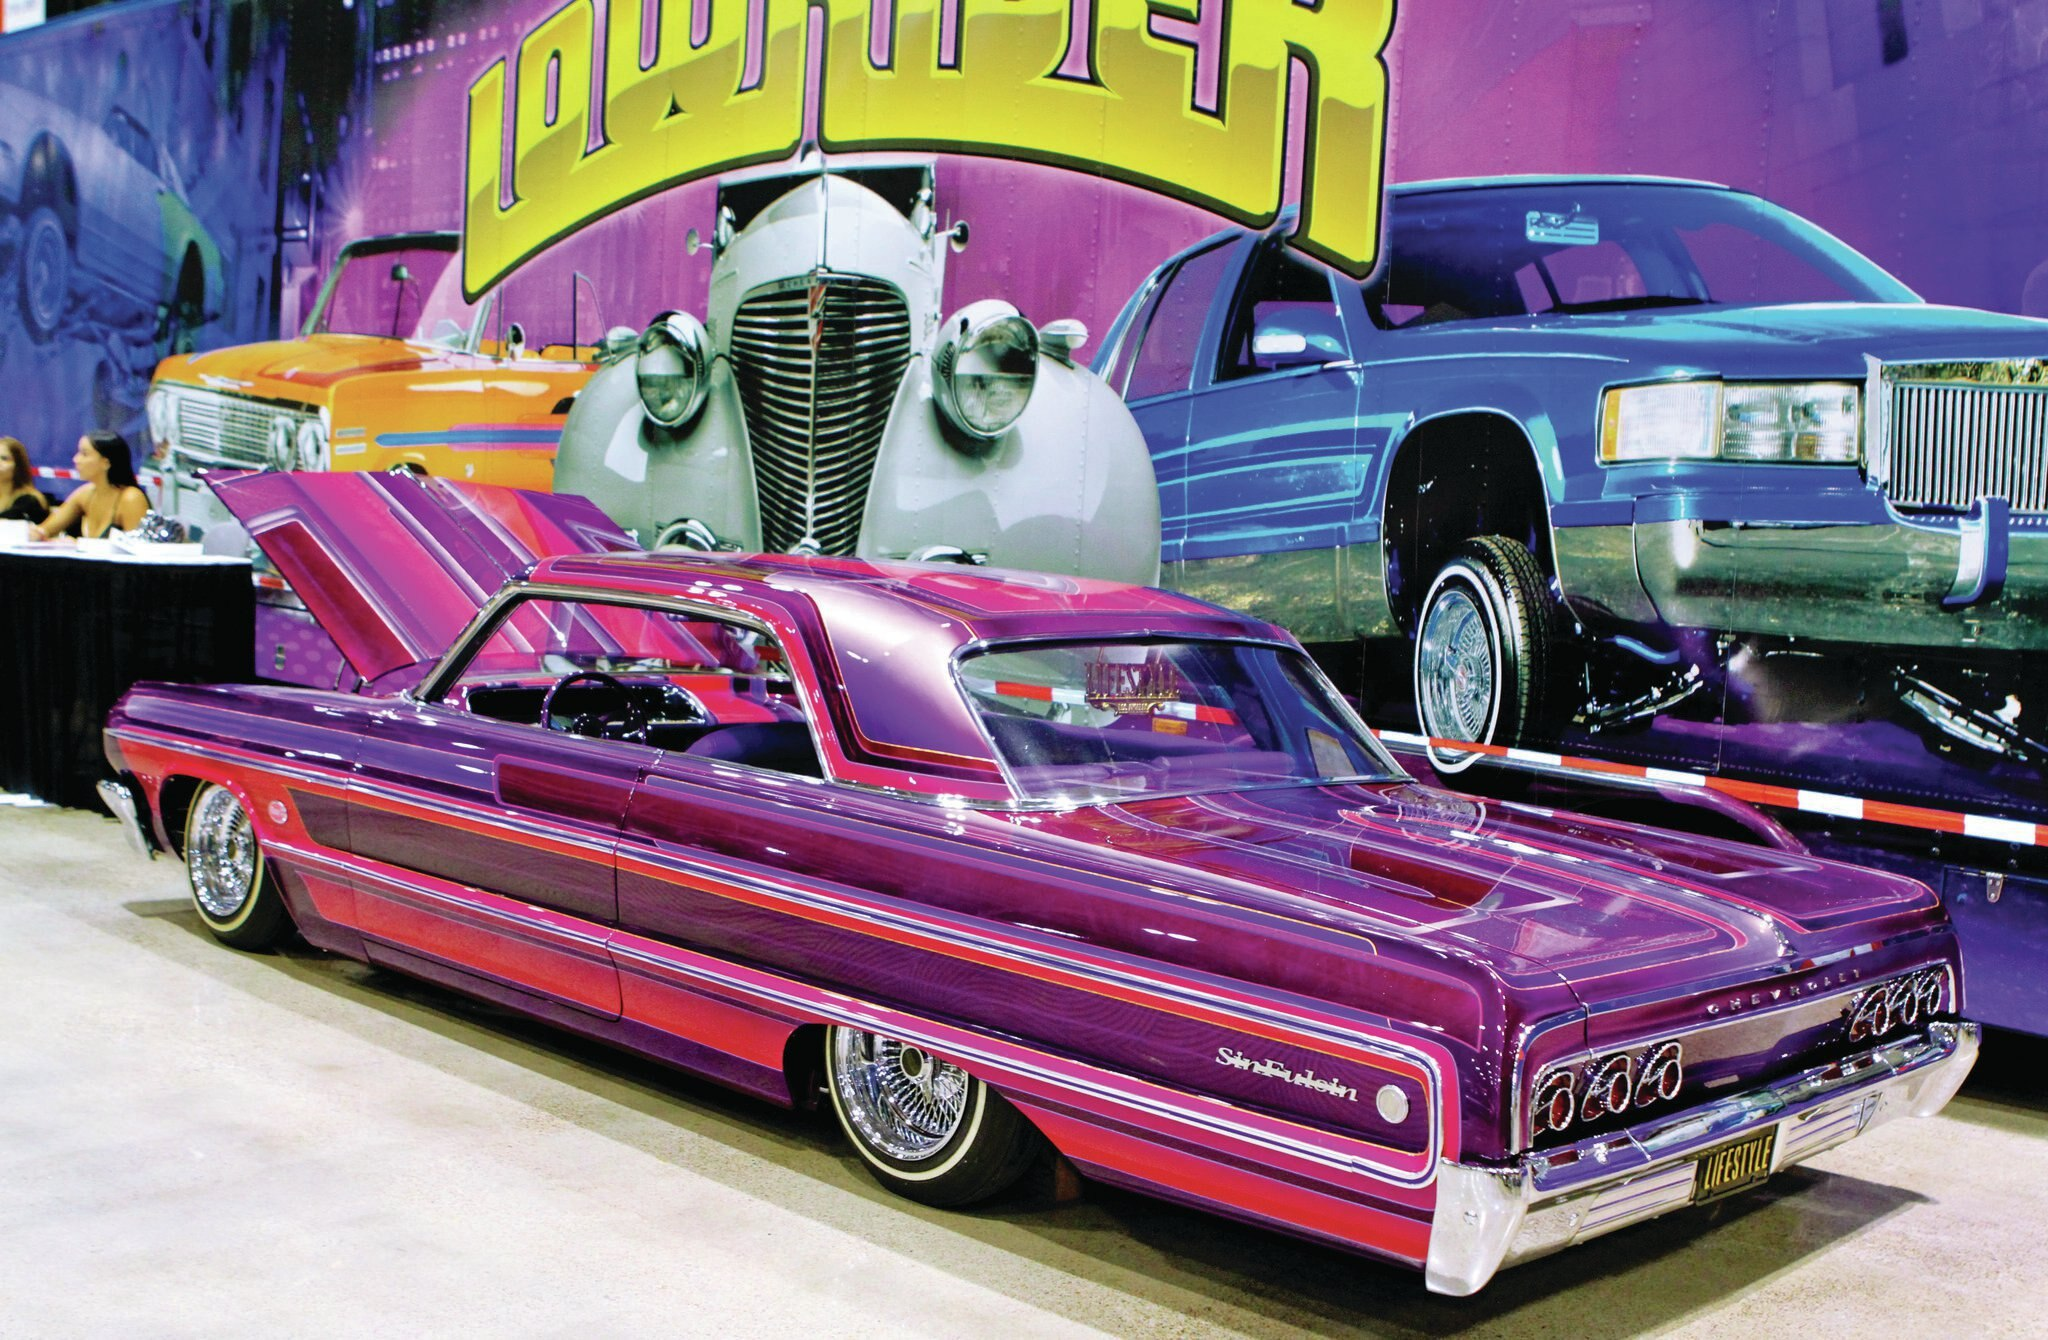 The Kansas City Autorama 2015